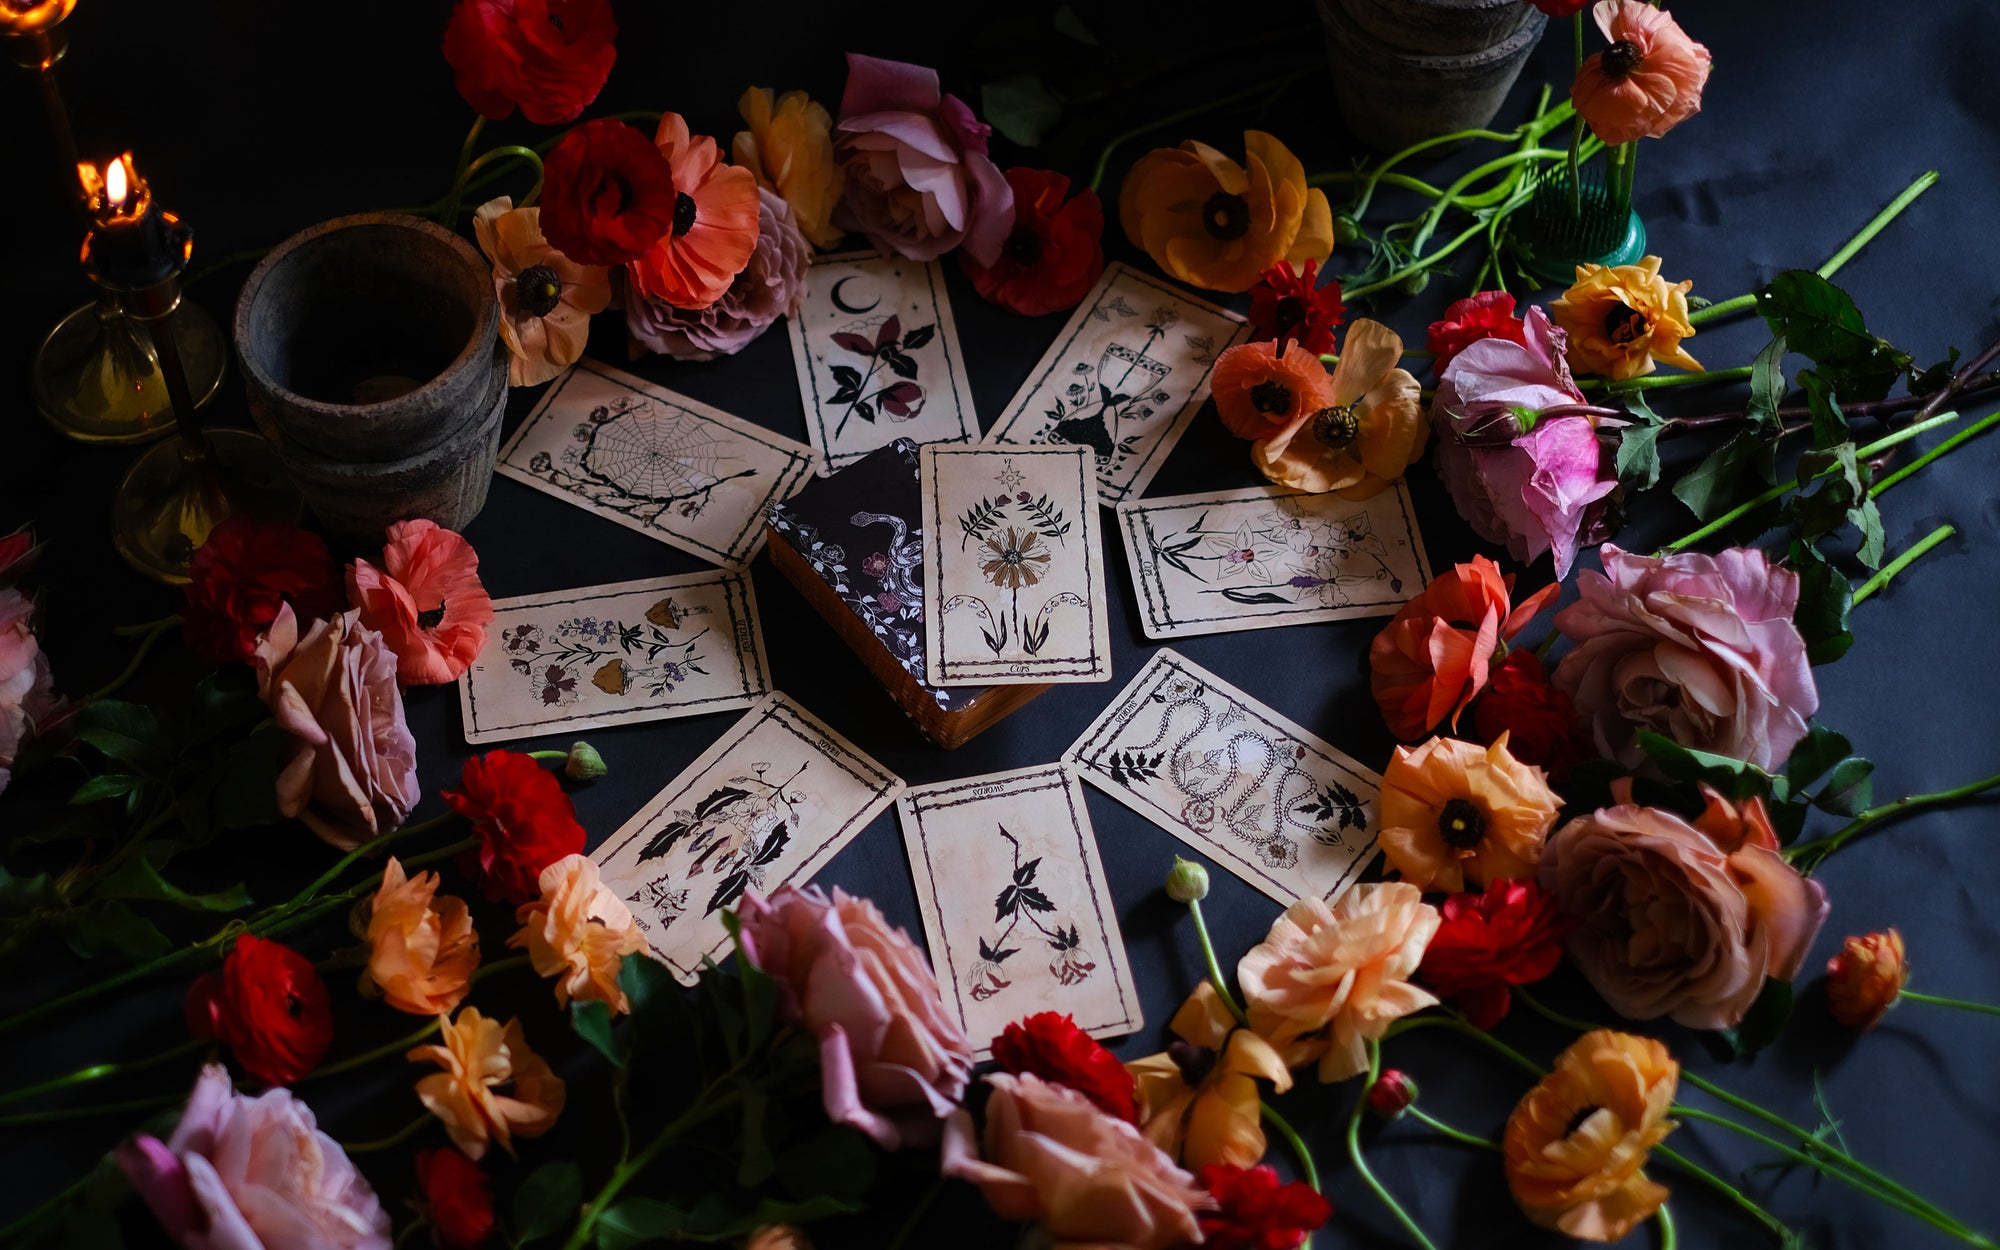 Botanical tarot card deck, the Ophidia Rosa, is hand illustrated, reflecting plants and flora, the natural world and the garden. Each of these Major and Minor Arcana Tarot cards is rooted within the seasons, mythology and traditional Tarot meaning.